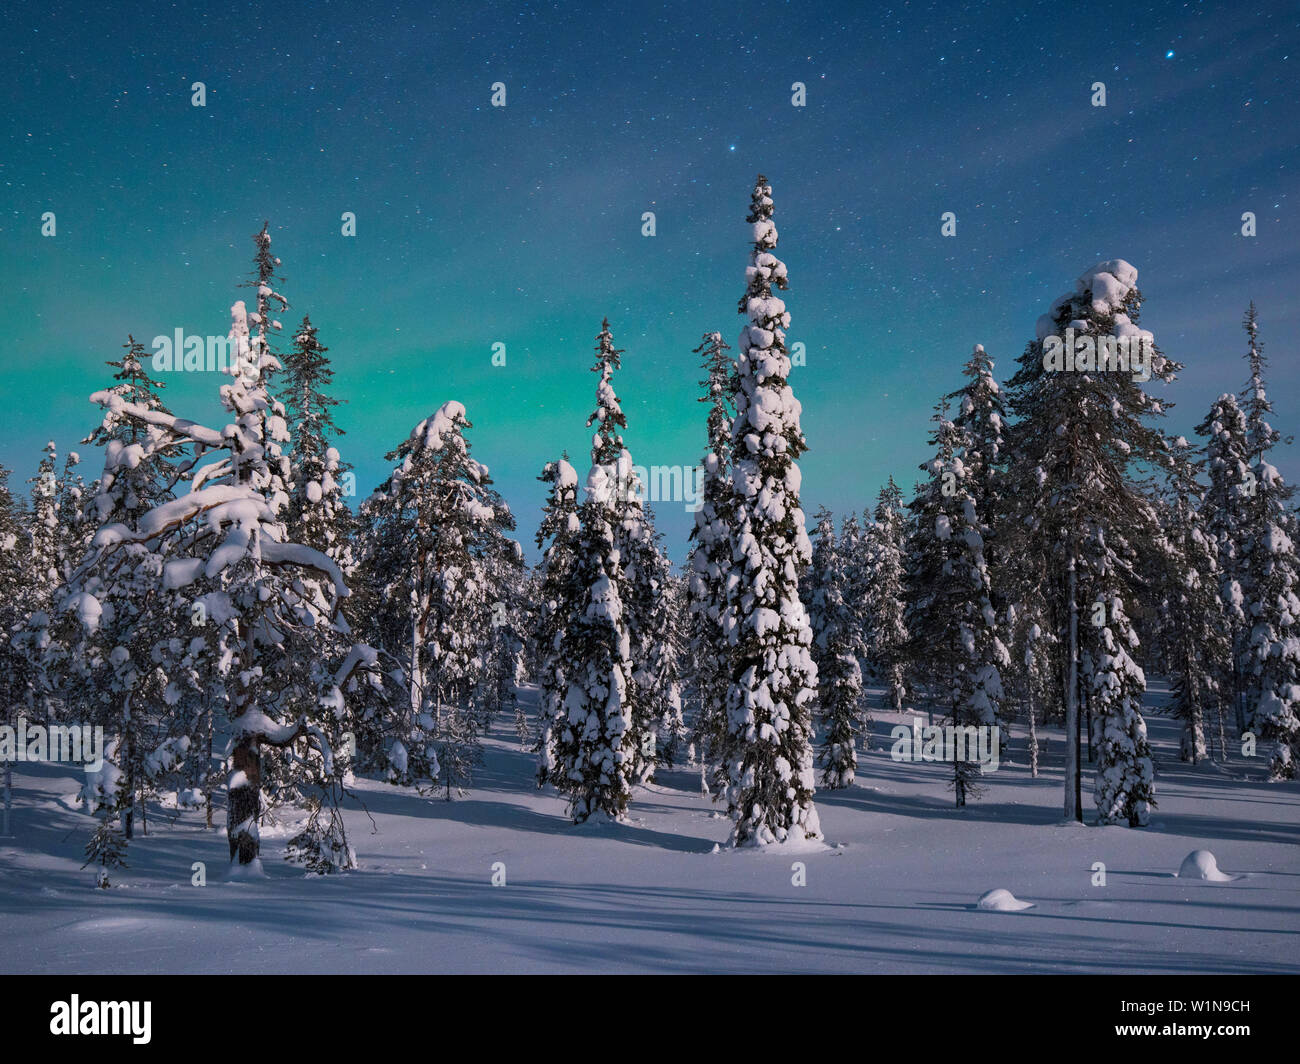 Panoramic view with snowy forest and frozen trees under a starry sky with northern lights in winter, Riisitunturi National Park, Kuusamo, Lapland, Fin Stock Photo